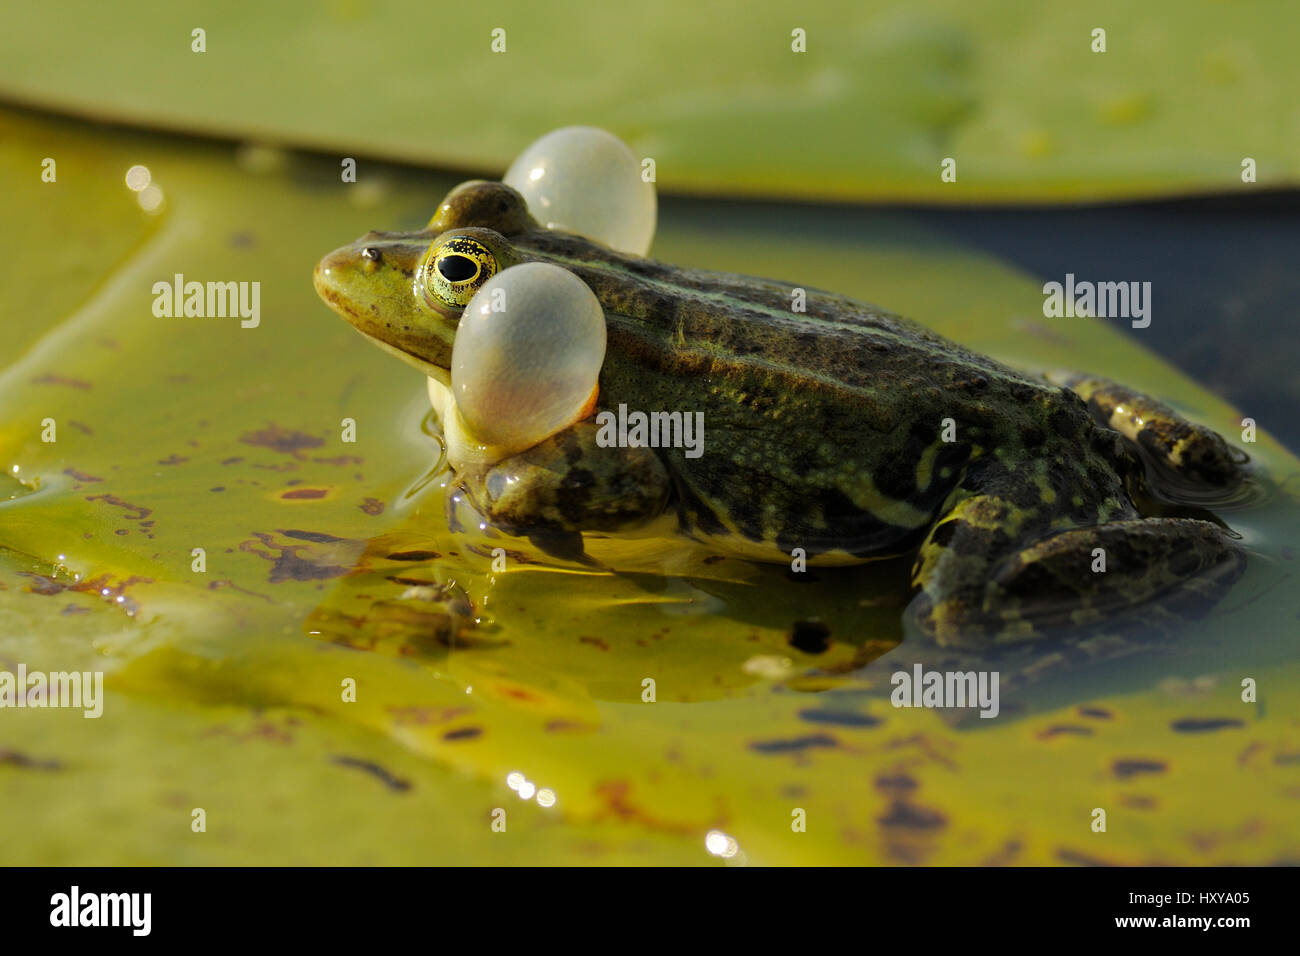 Pool Frog (Rana lessonae) vocalising with vocal sacs inflated, Danube delta rewilding area, Romania. - Stock Image